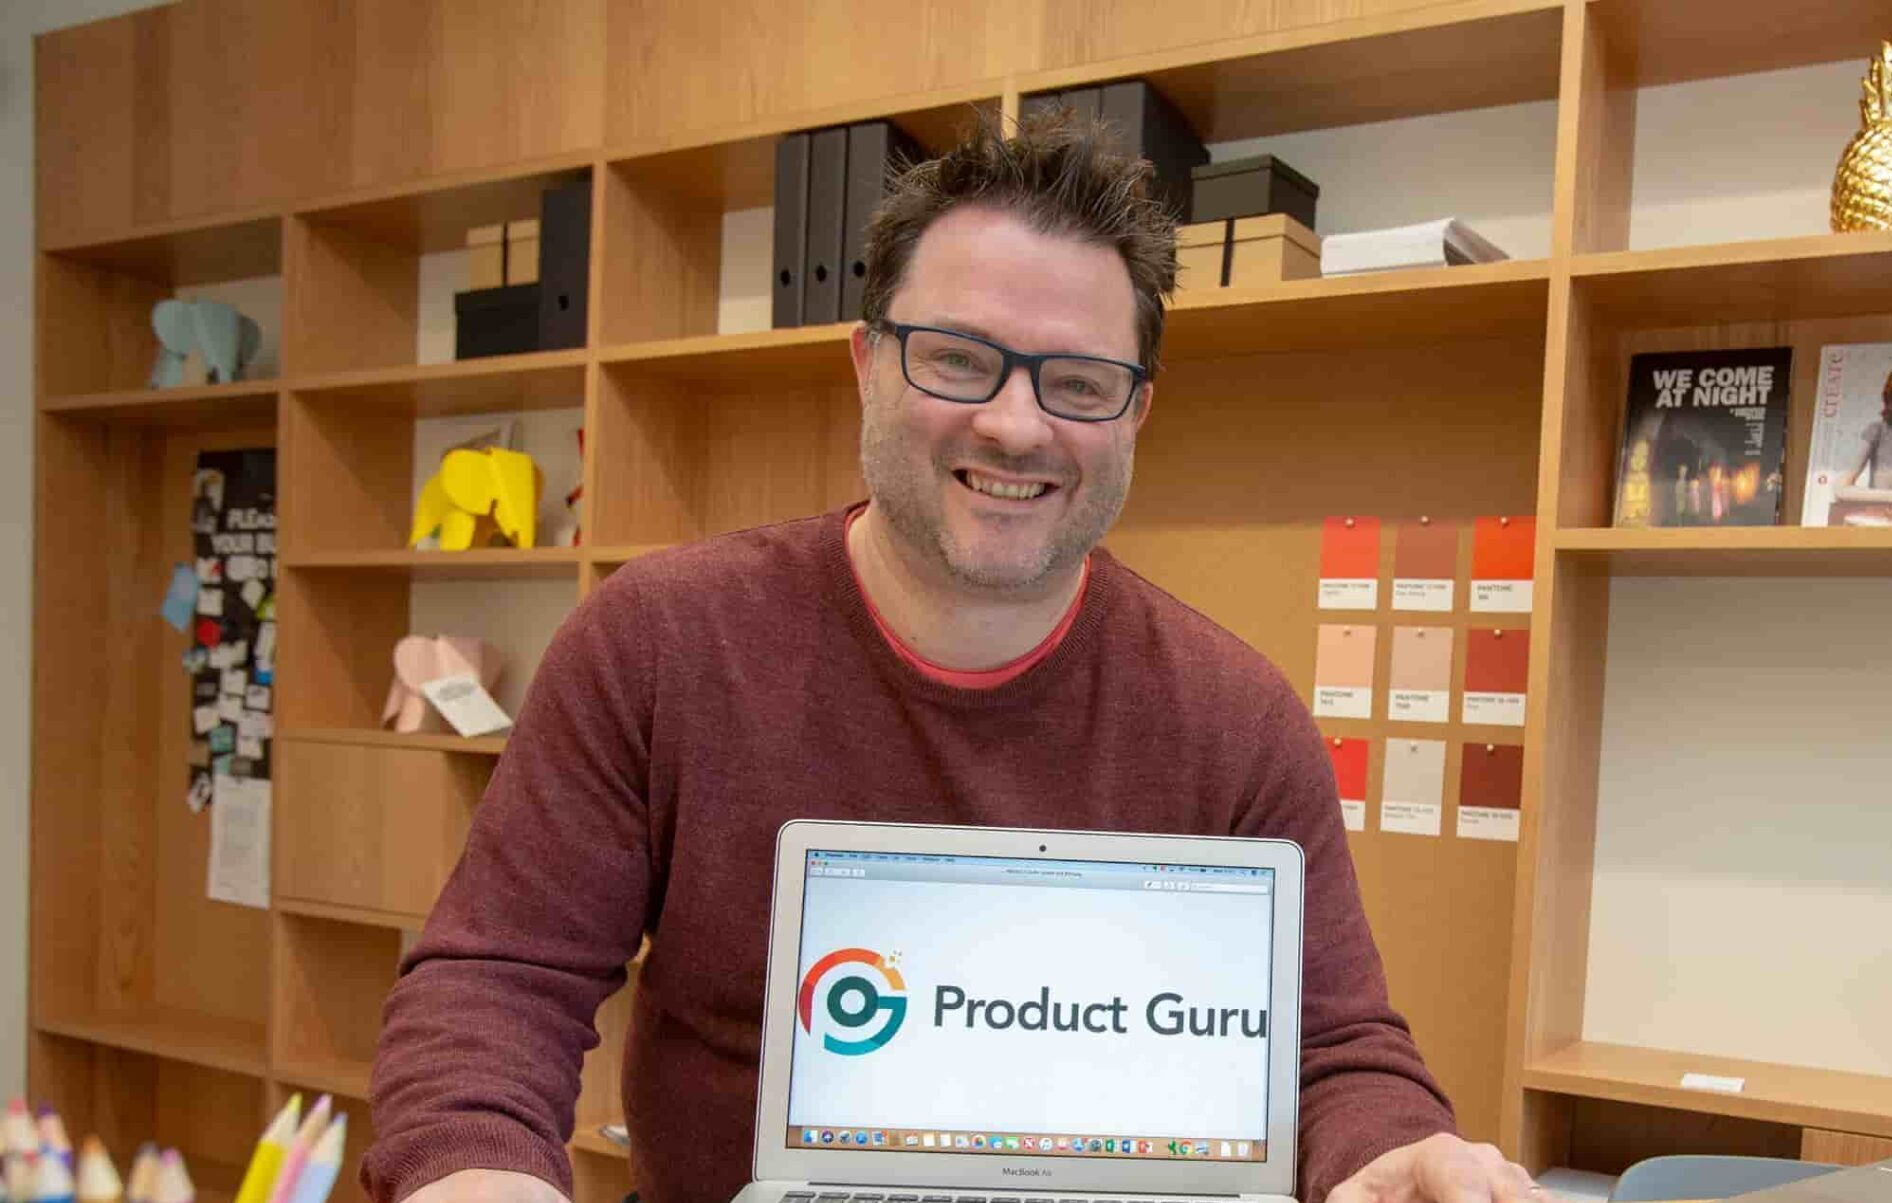 Product Guru secures £330k  Seed investment led by Scotmid Coop and Techstart VC